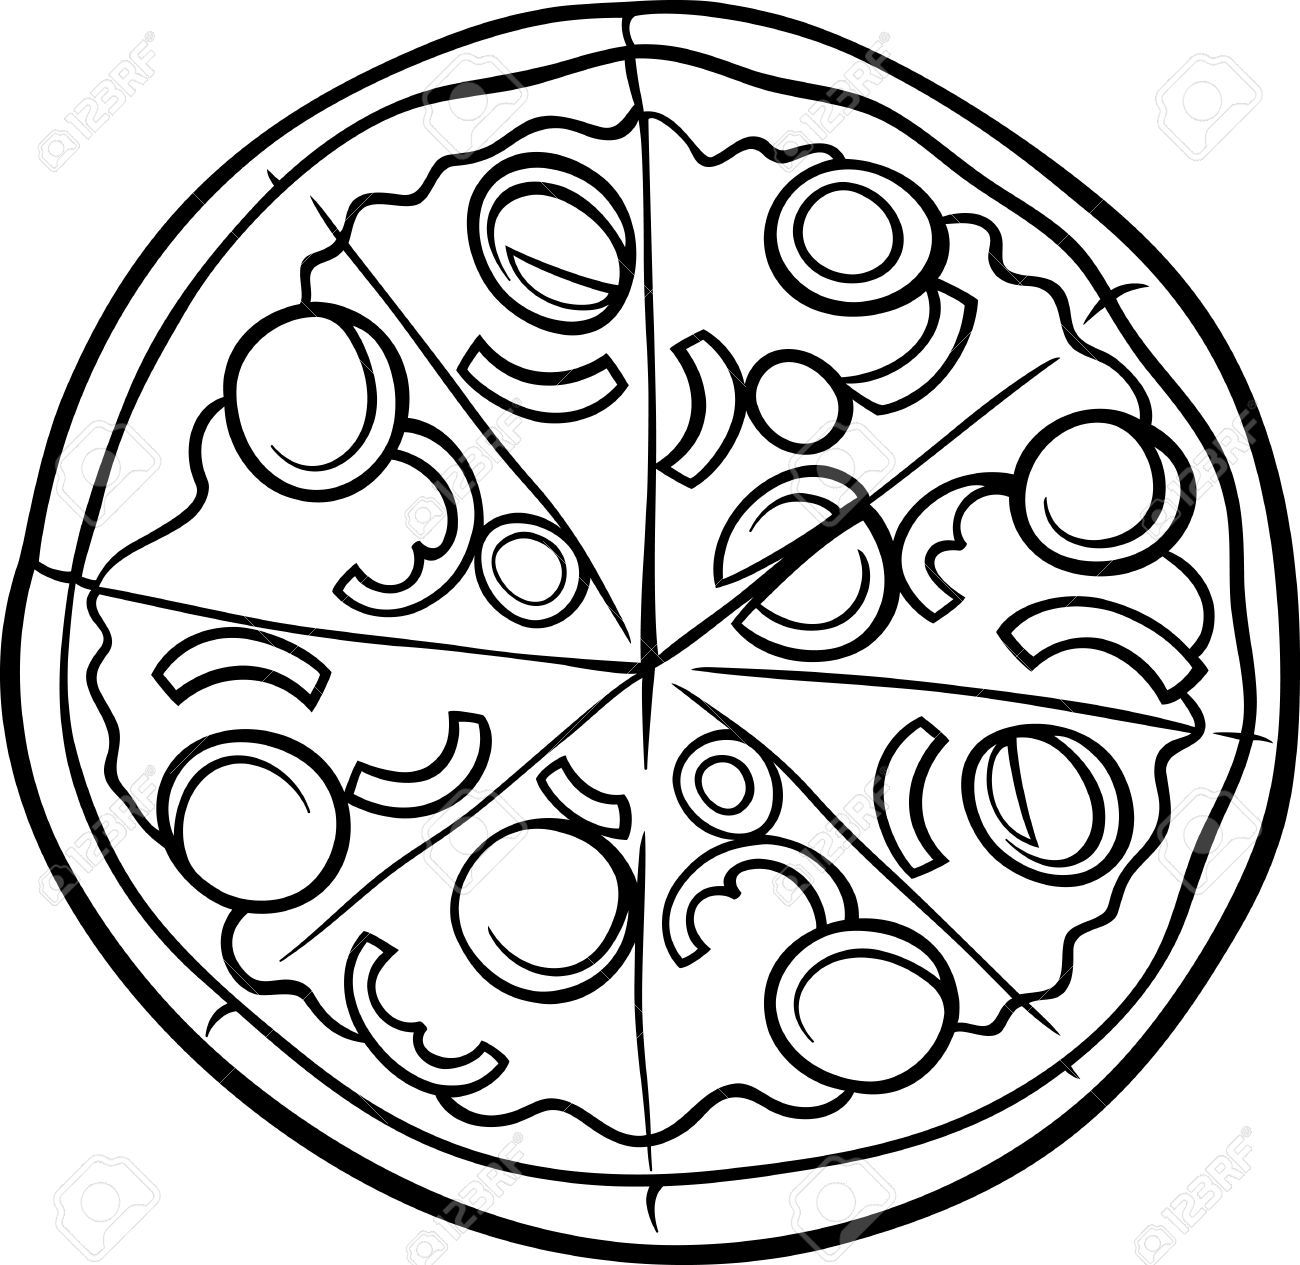 Square pizza clipart picture royalty free library Free Clip art of Pizza Clipart Black and White #453 Best ... picture royalty free library